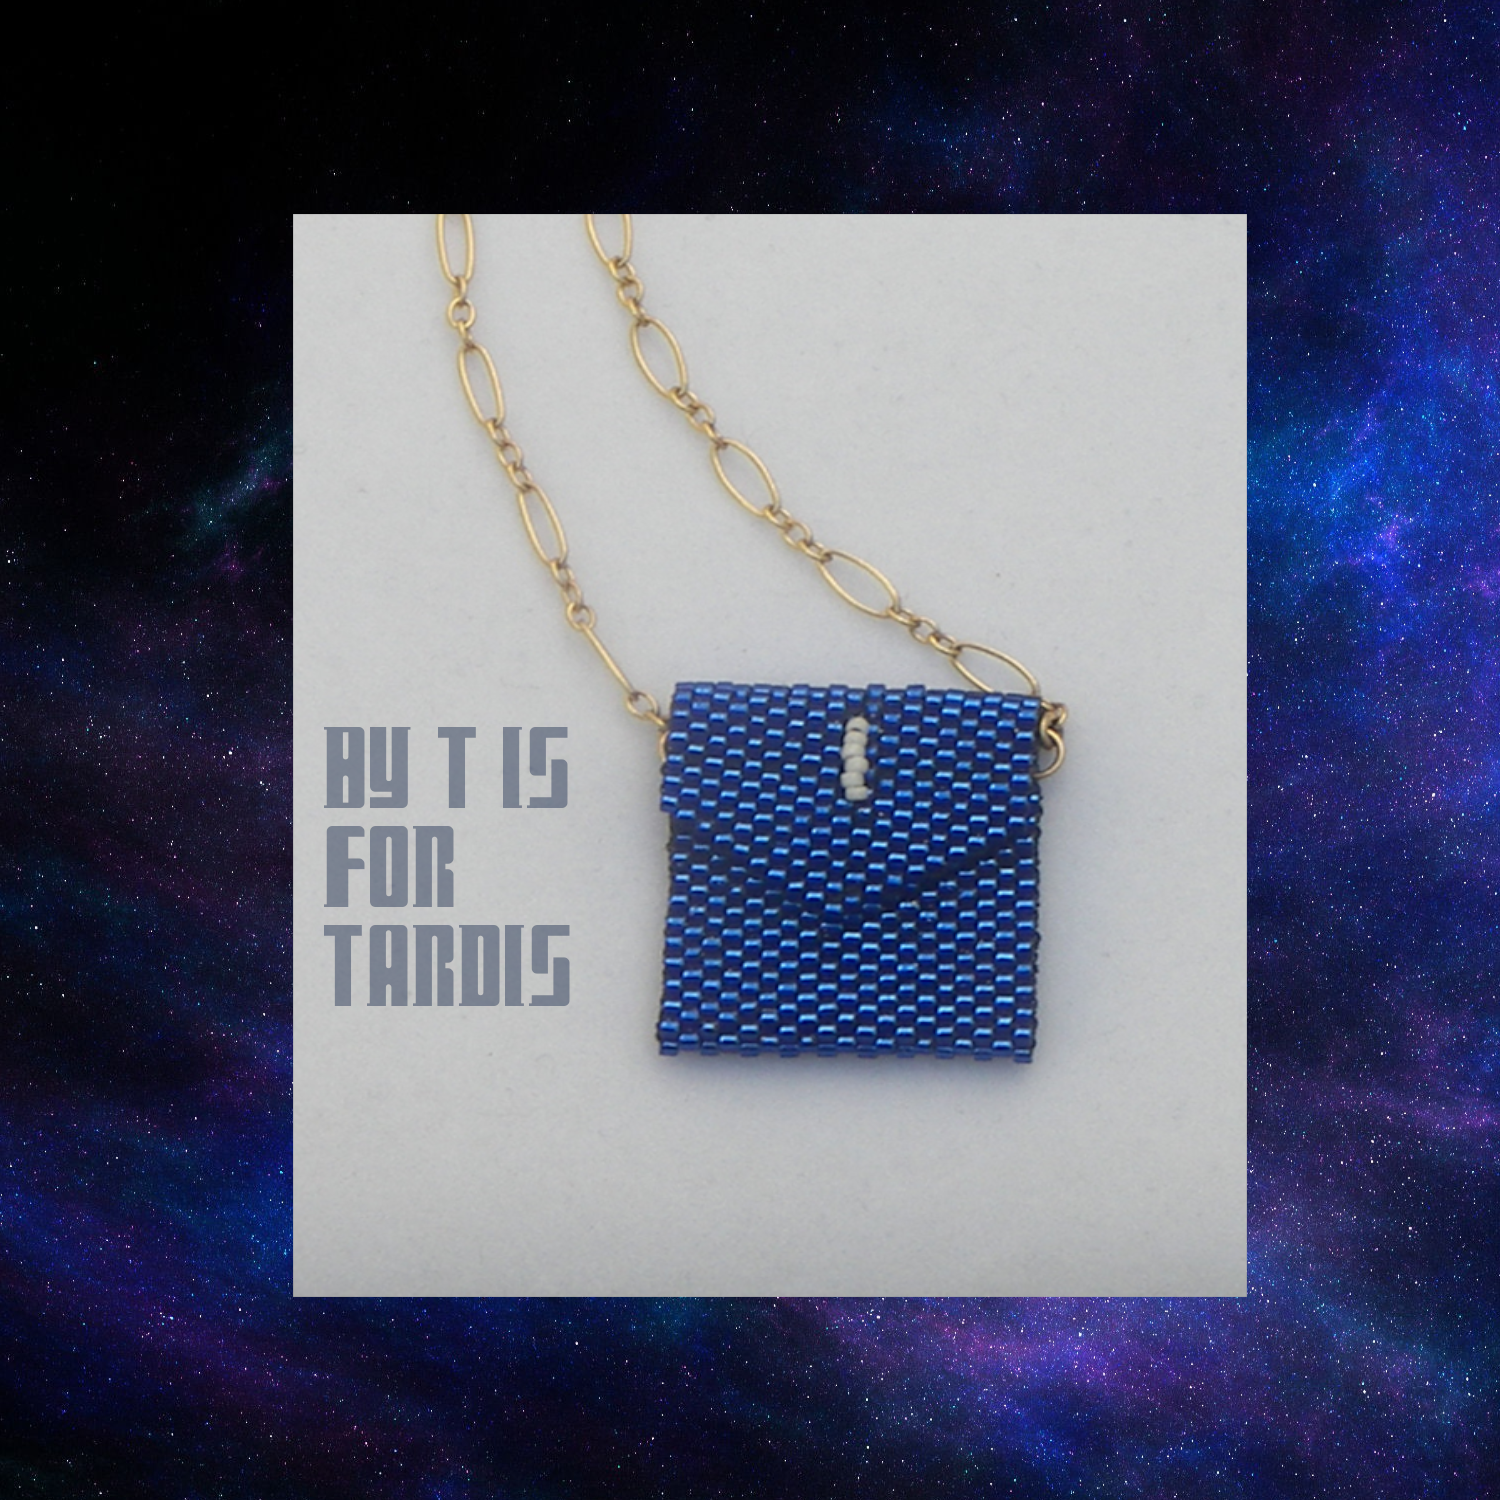 tardis blue envelope closed on chain by KC Dragonfly